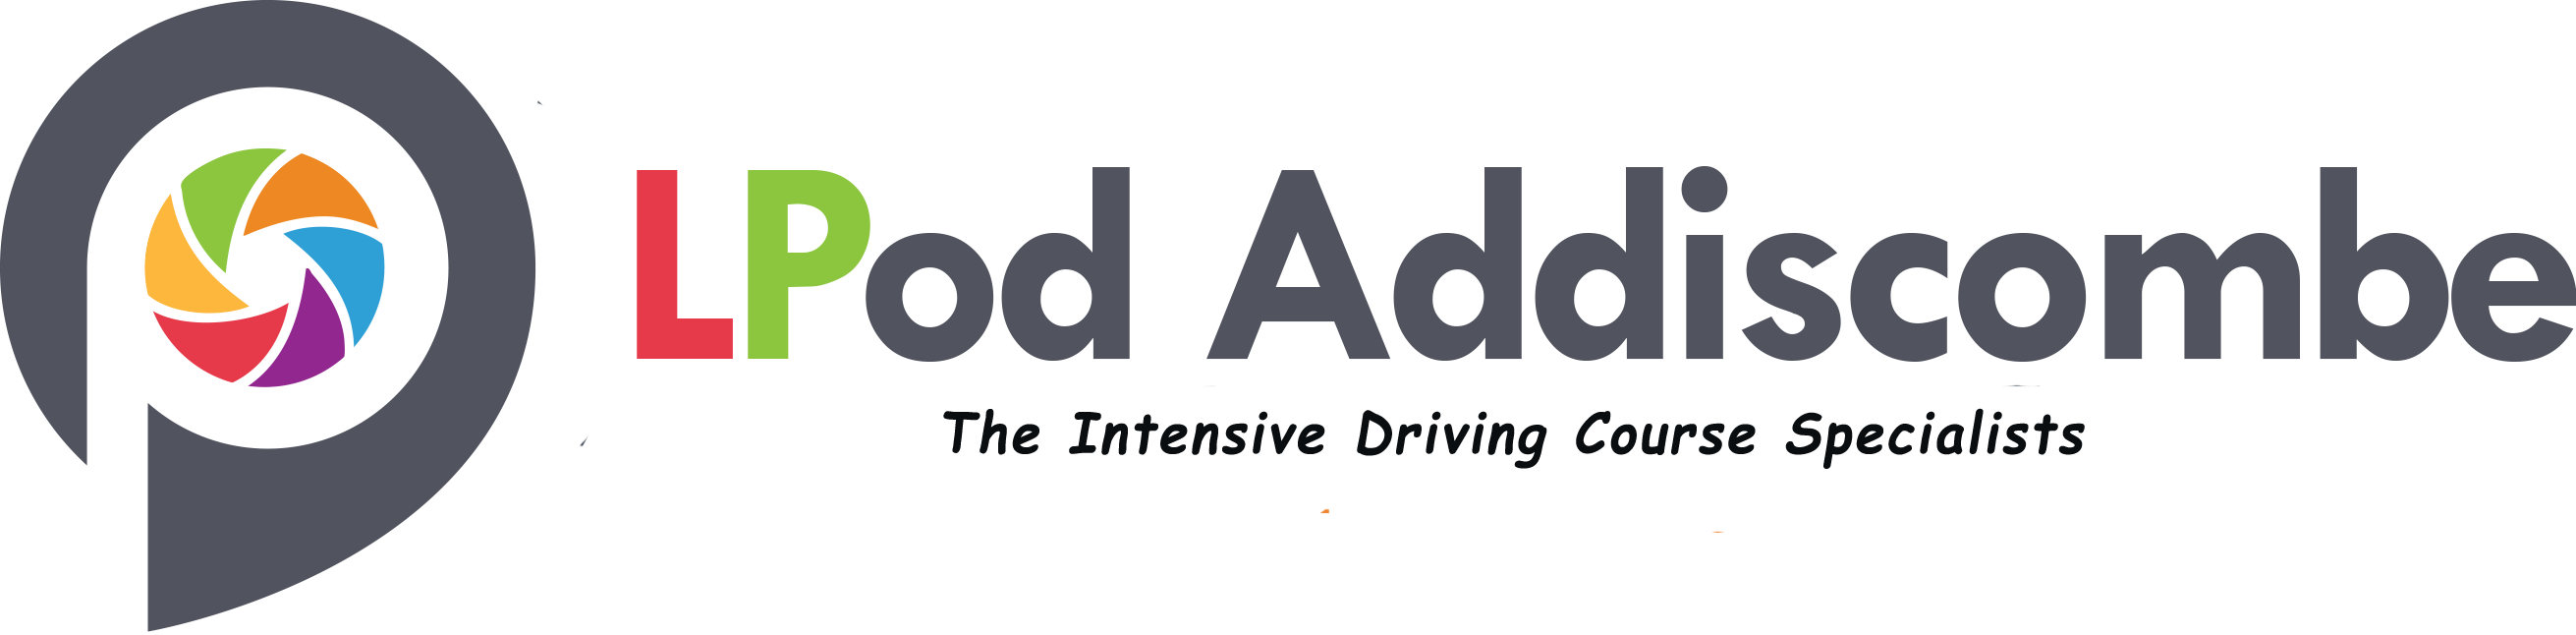 intensive driving courses addiscombe, fast pass courses addiscombe, one week driving addiscombe